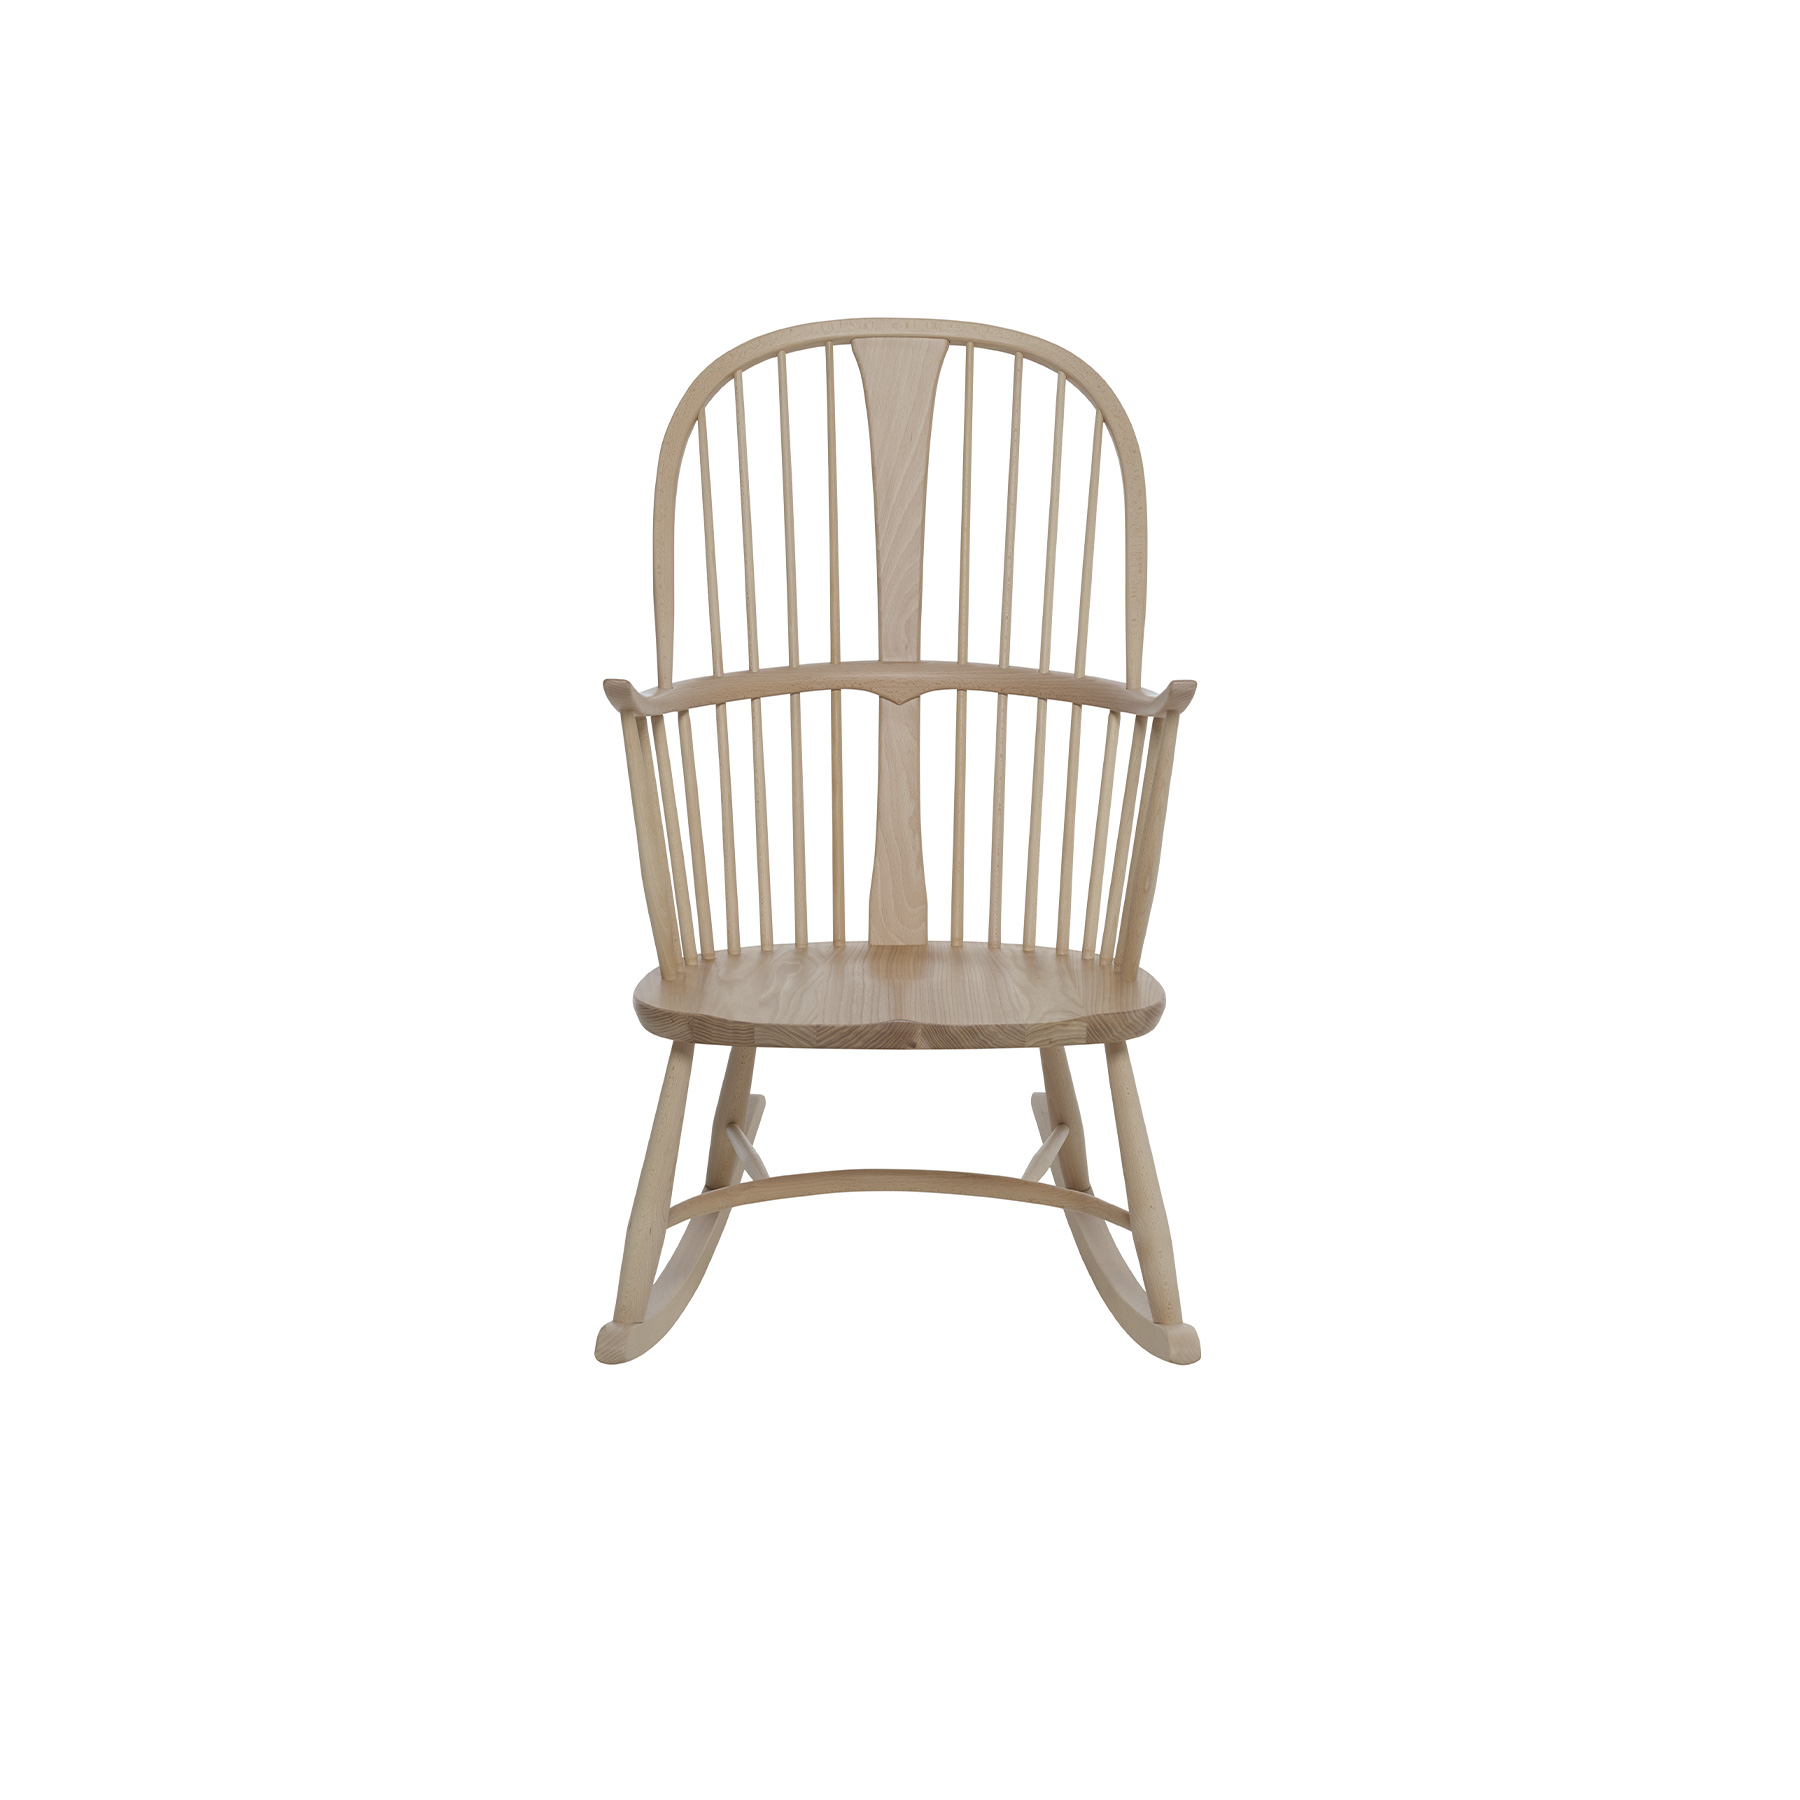 Originals Chairmaker Rocking Chair - <p>The Ercol Originals are pieces of timeless and classic design that never date or show their age. It is furniture that is as relevant and as functional now as it was when it was created in the 1950s and 1960s. This furniture was designed by ercol's founder, Lucian Ercolani, who drew for his inspiration on the time proven local design and craft in the Chiltern Hills around where he lived and built his first factory in 1920 in High Wycombe. Using the strength of beech and the beauty of elm he carried this definition on into a huge variety of dining, kitchen, and school chairs and then extended the idiom into the low easy chair range epitomised by the 206 armchair and the studio couch. The beauty of the colour and the grain of the elm took Lucian on to use elm for the tables and cabinets of the Originals and the following Windsor range. This classic rocking chair encompasses a double bow seat back, central slat and eight turned spindles, all features which are characteristically ercol. Upward turned armrests extending from the central bow and supported by three spindles provide added comfort. The solid ash oyster shaped seat fixes the legs into place. The rockers create a perfectly balanced smooth movement. This rocking chair is the perfect addition to any living room, of contemporary or traditional décor. The chair is available in your choice from our lacquer finishes which both protect the timber and allow the beauty of the natural grain to show through.  Alternatively you can chose from our range of paint finishes to give your room a pop of colour.</p>    Matter of Stuff